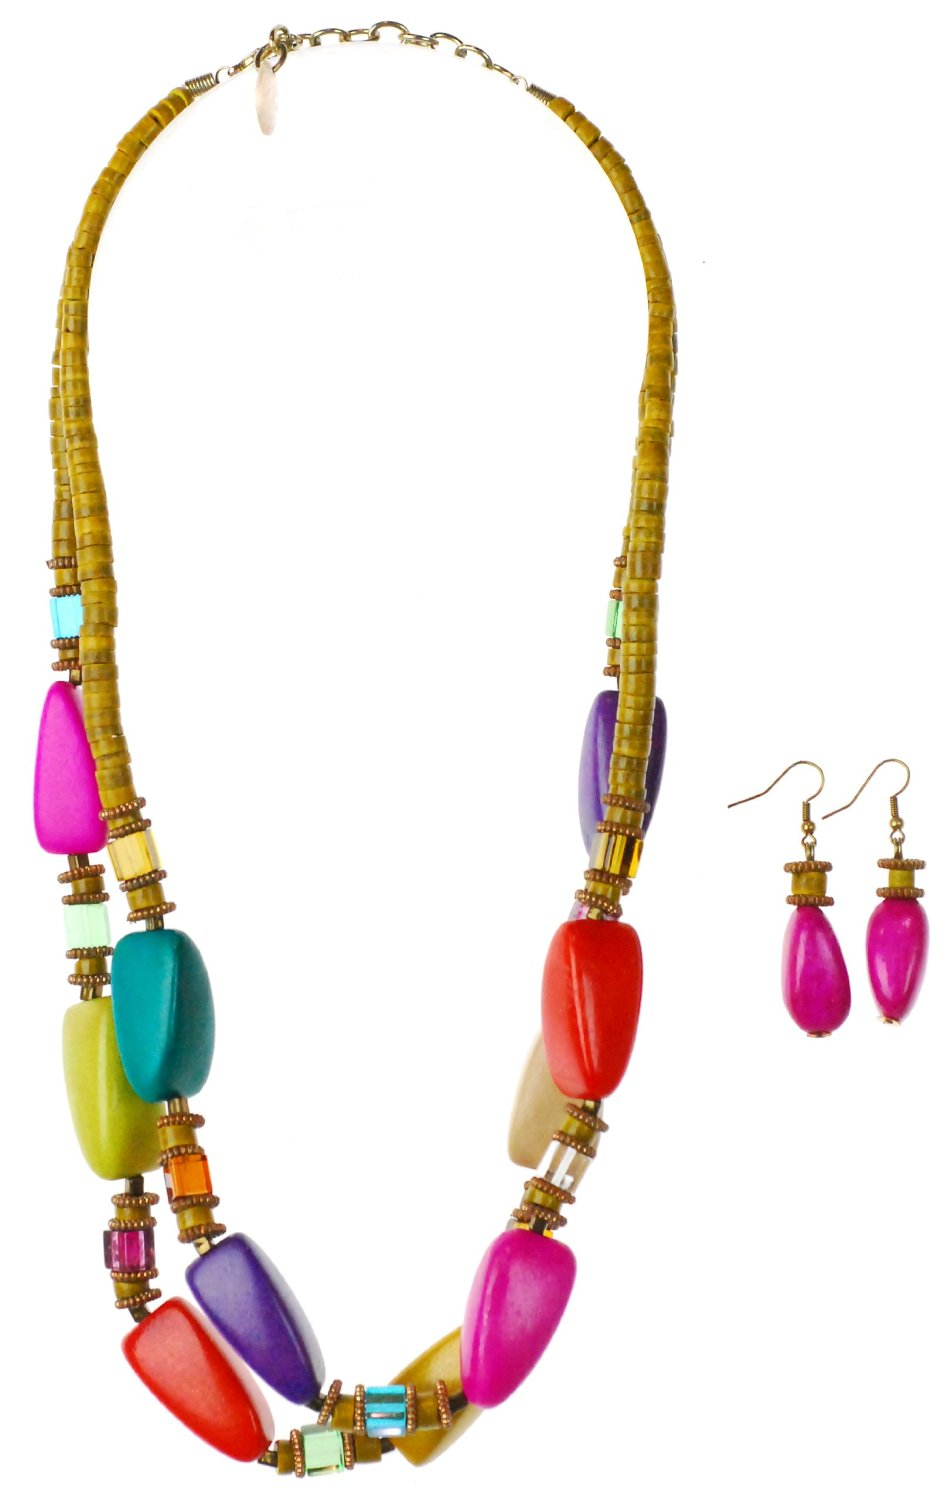 Colorful necklaces for plus size outfits